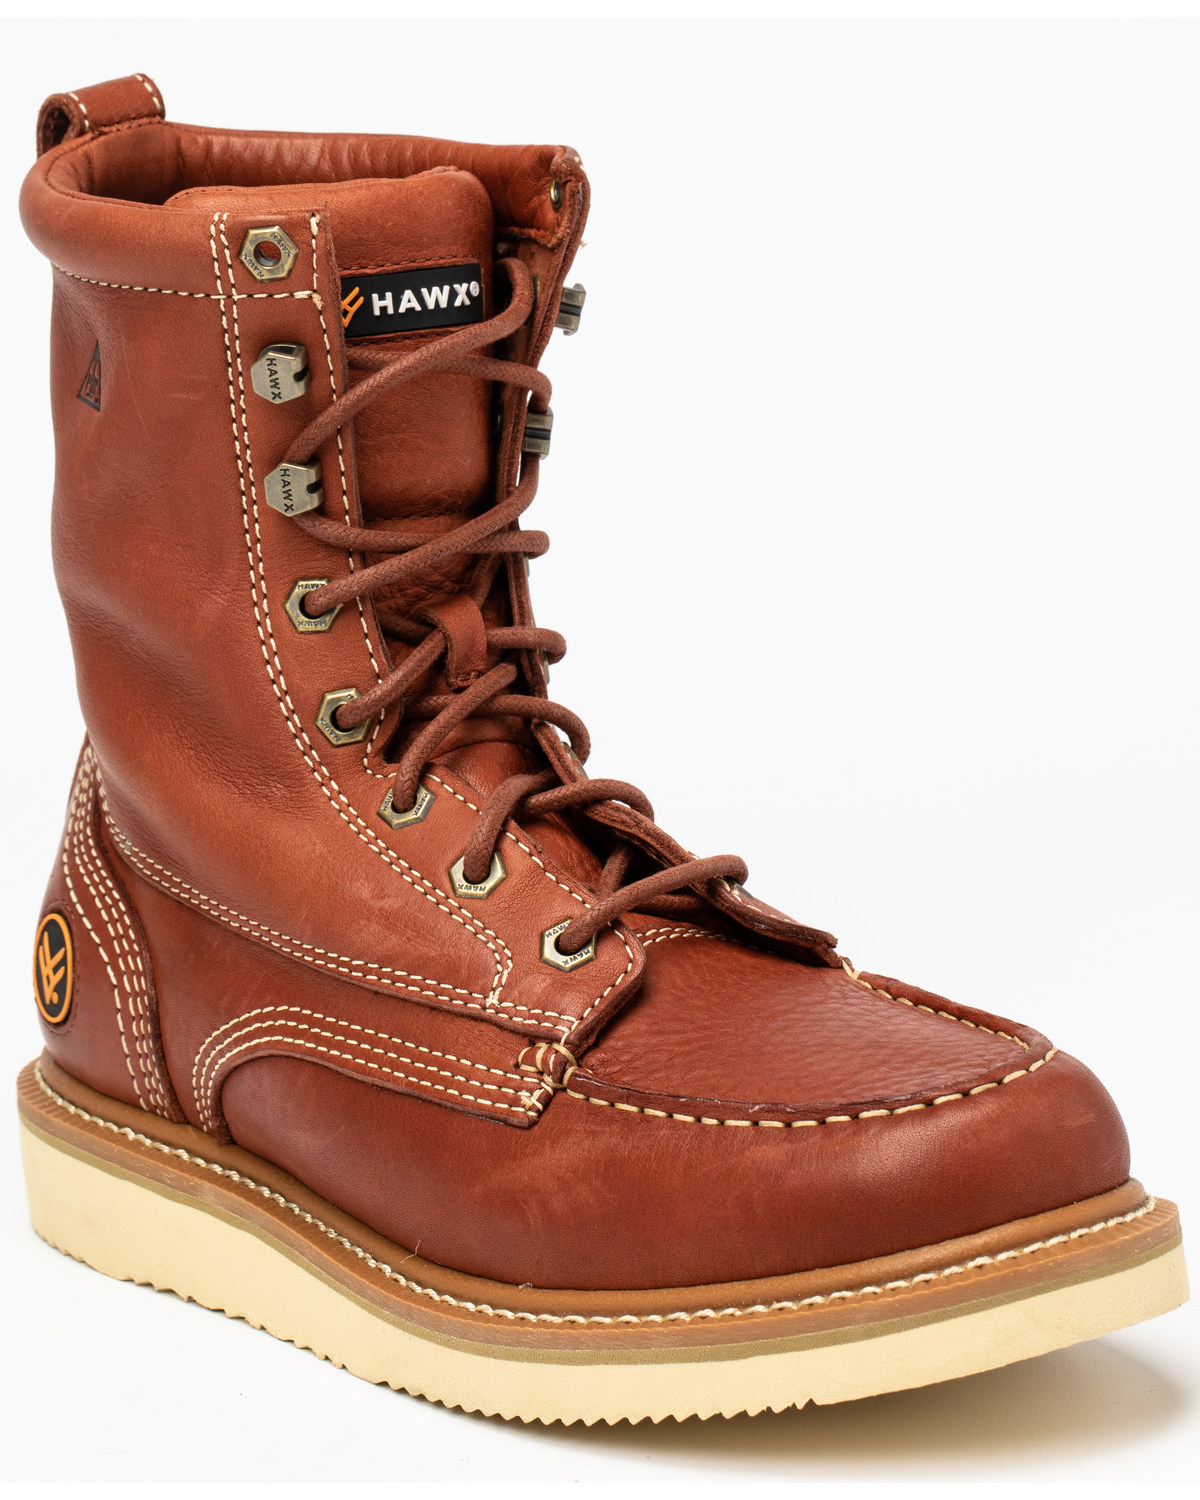 Hawx Men's Lacer Wedge Work Boots